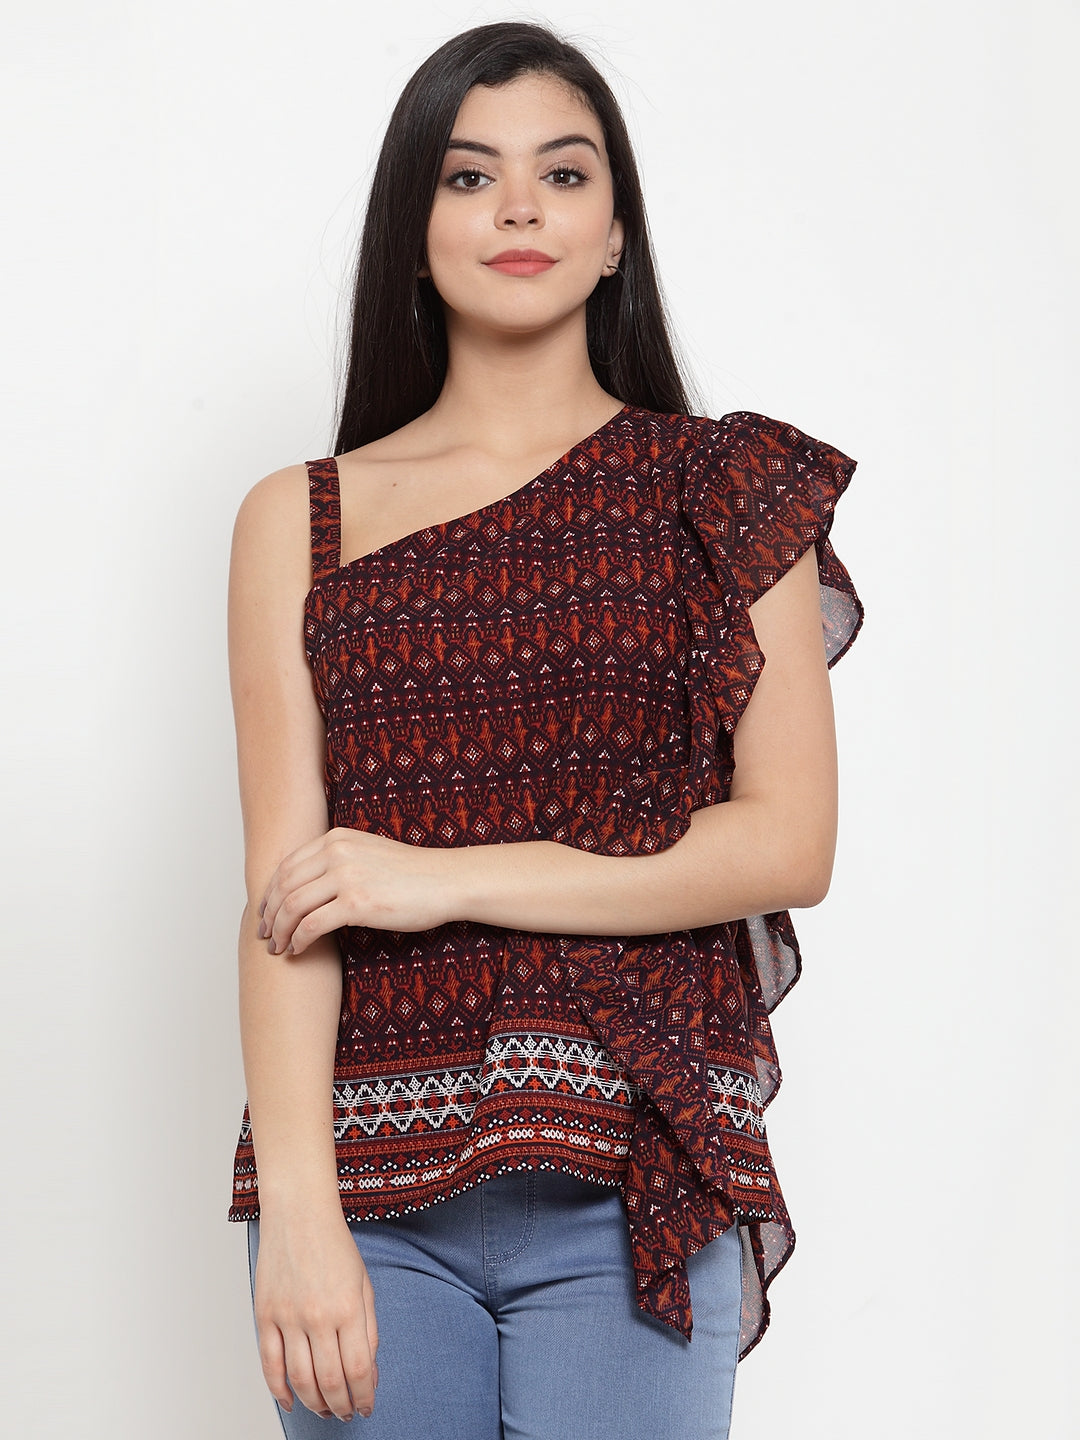 Aujjessa Brown Multi One Off Shoulder Top